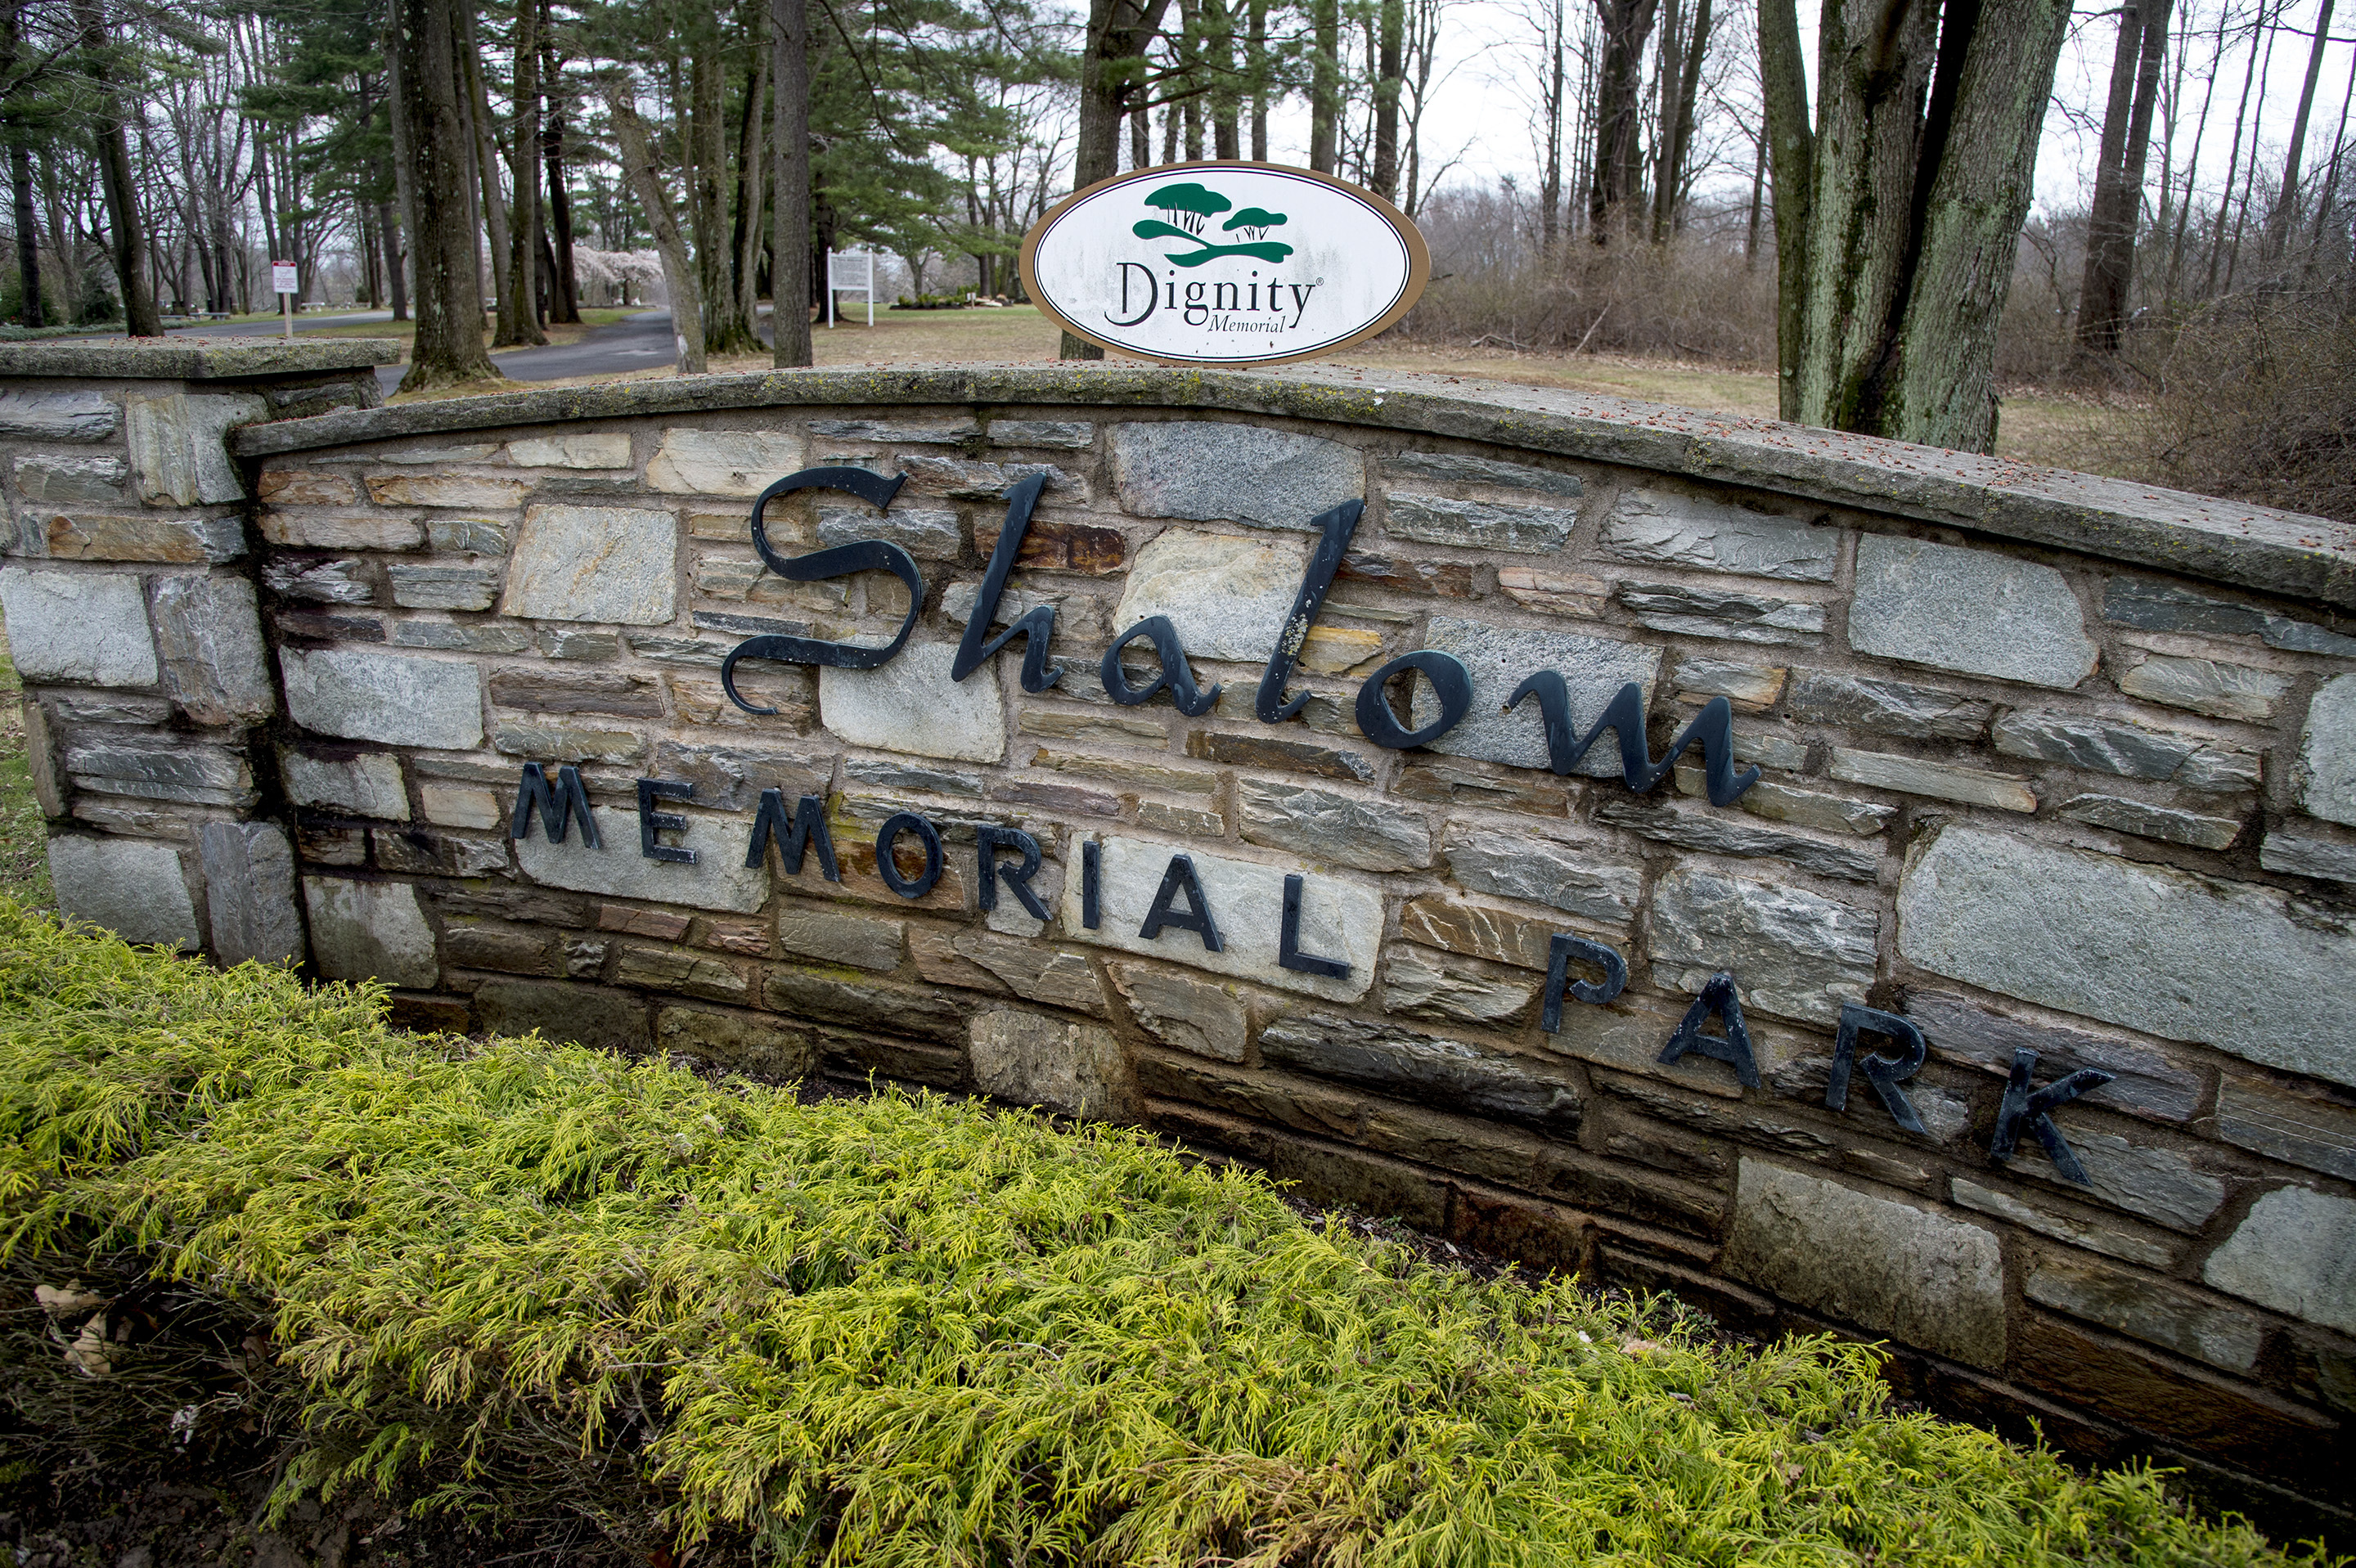 The entrance to Shalom Memorial Park off of Pine Road in Huntingdon Valley April 4, 2017. David Waxler's mother and father are buried in the cemetery. He was told shortly before his mother Edna's burial in June 2016 that the workers for the owners of the cemetery, Houston-based Service Organization International under the name Dignity Memorial, found a casket already in the space, next to his father's casket, where his mother was to be buried. There have been other complaints from relatives of loved ones who are buried in the cemetery. CLEM MURRAY / Staff Photographer